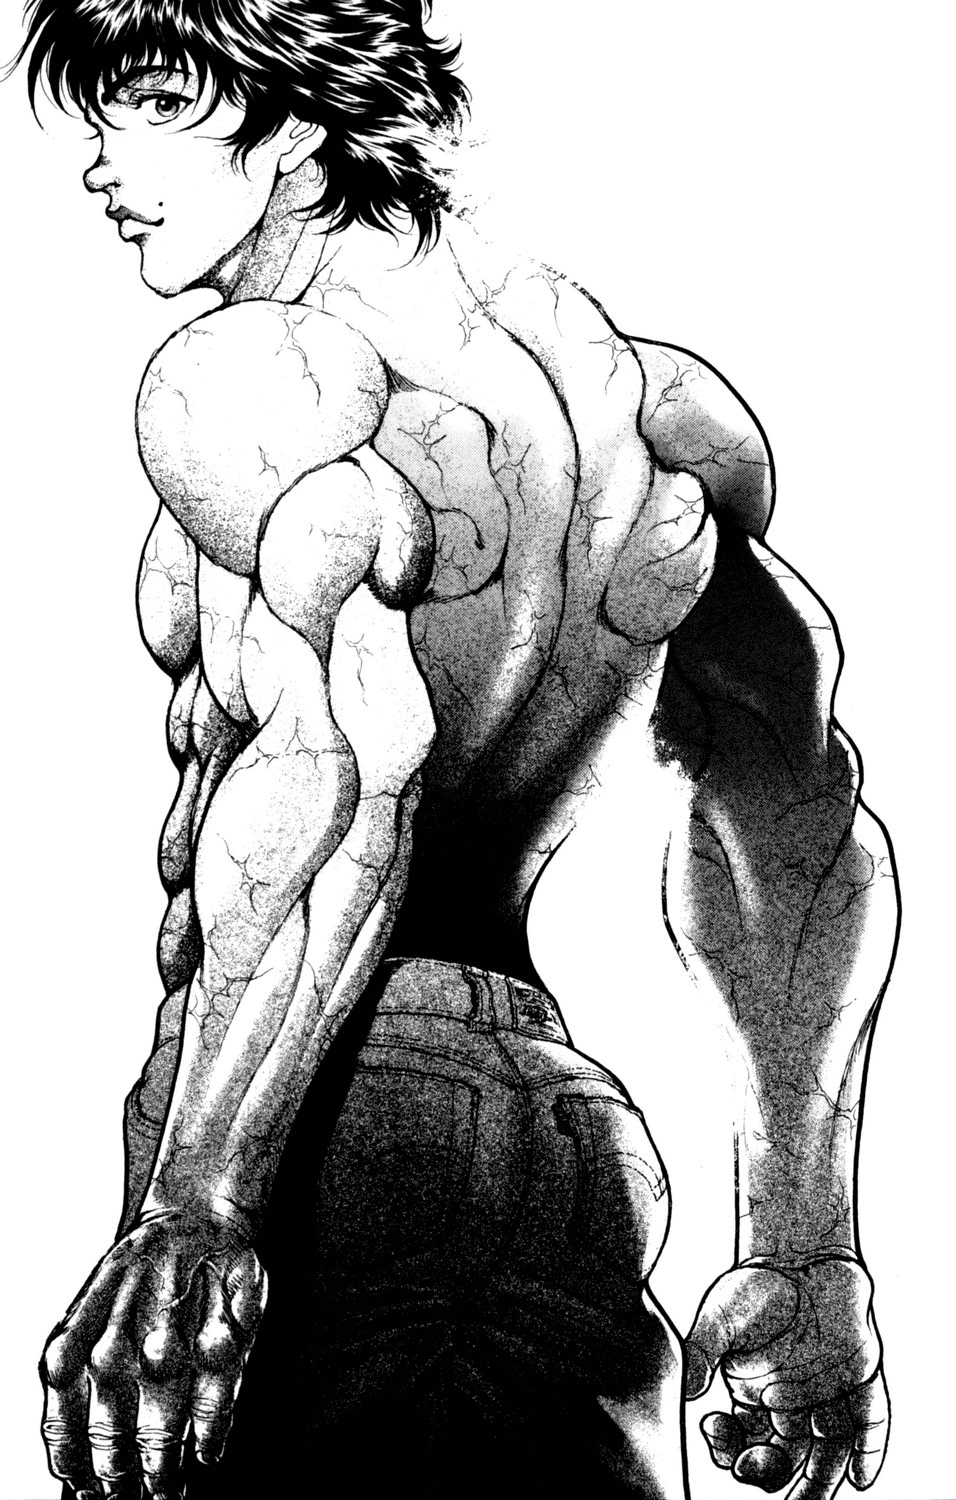 baki hanma - Google Search | My Love ✨ | Anime art, Anime